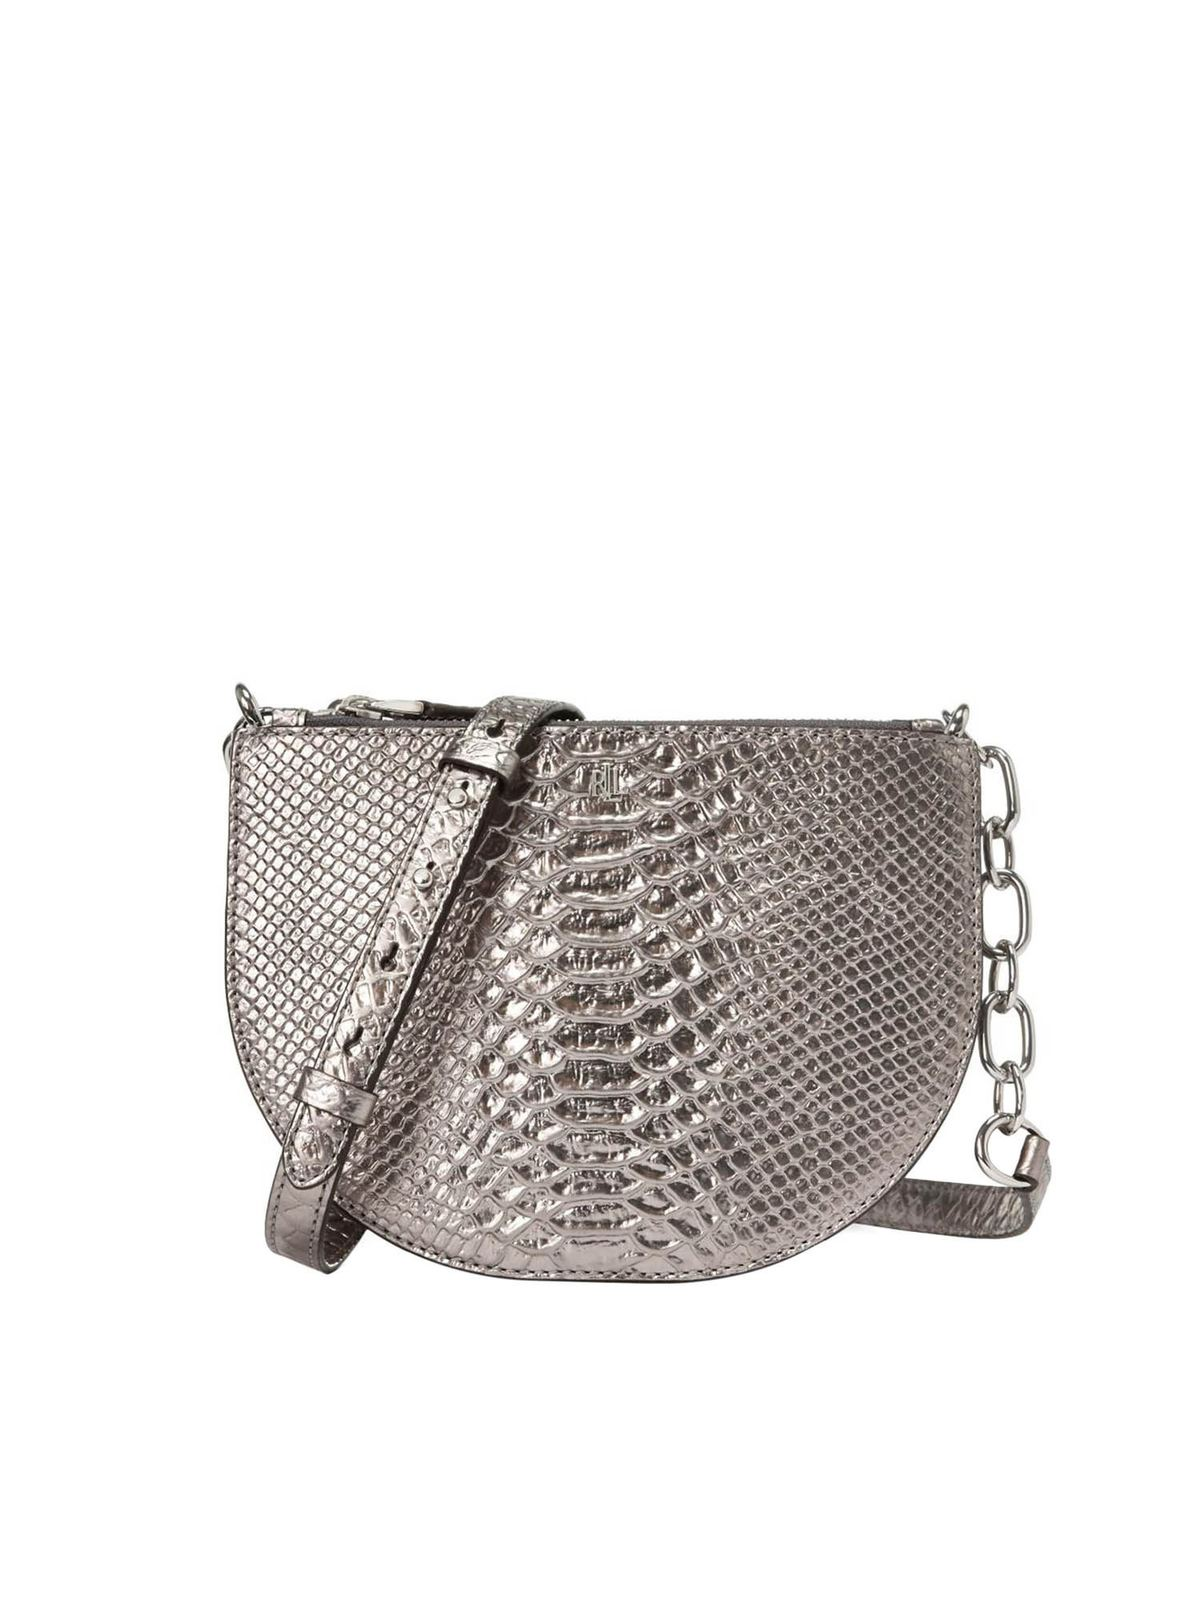 Lauren Ralph Lauren SUTTON 22 BAG IN SILVER COLOR